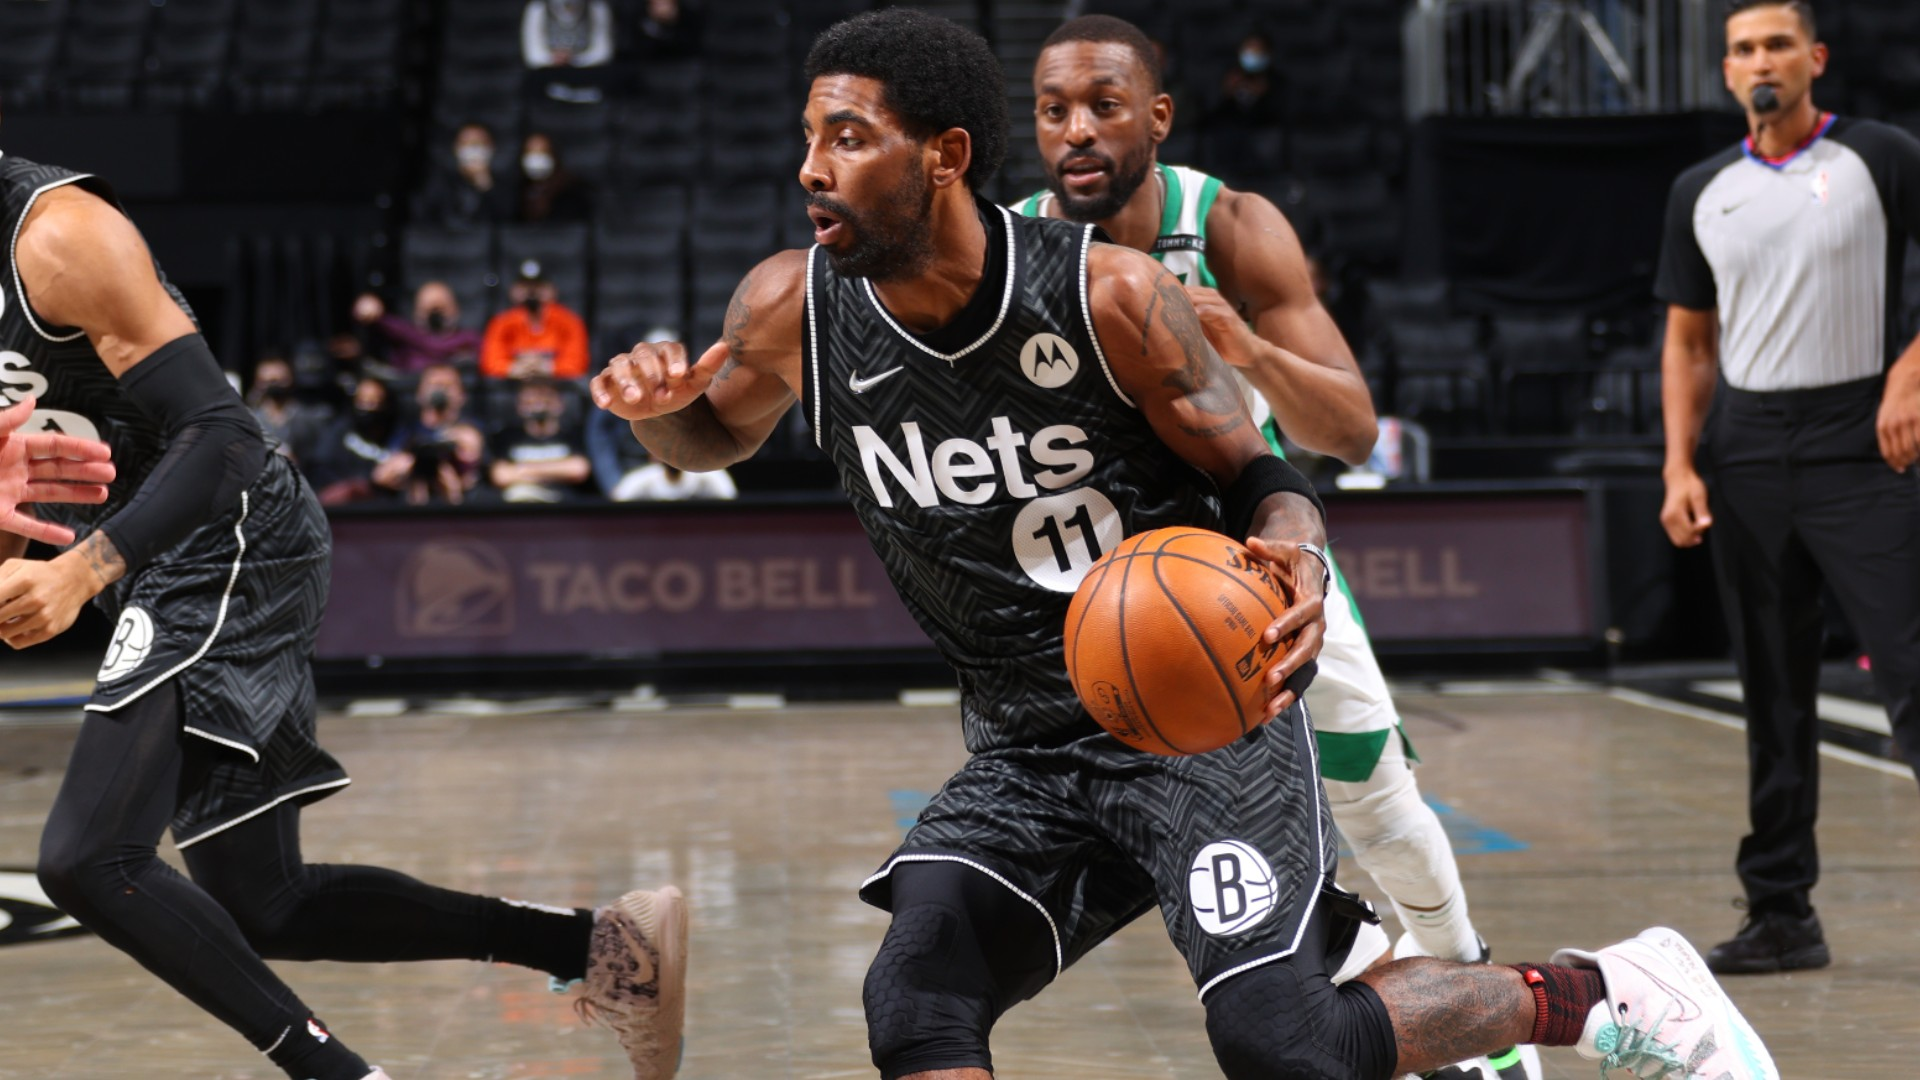 Kyrie Irving drops 40 as star-studded Nets win, Giannis leads Bucks with triple-double